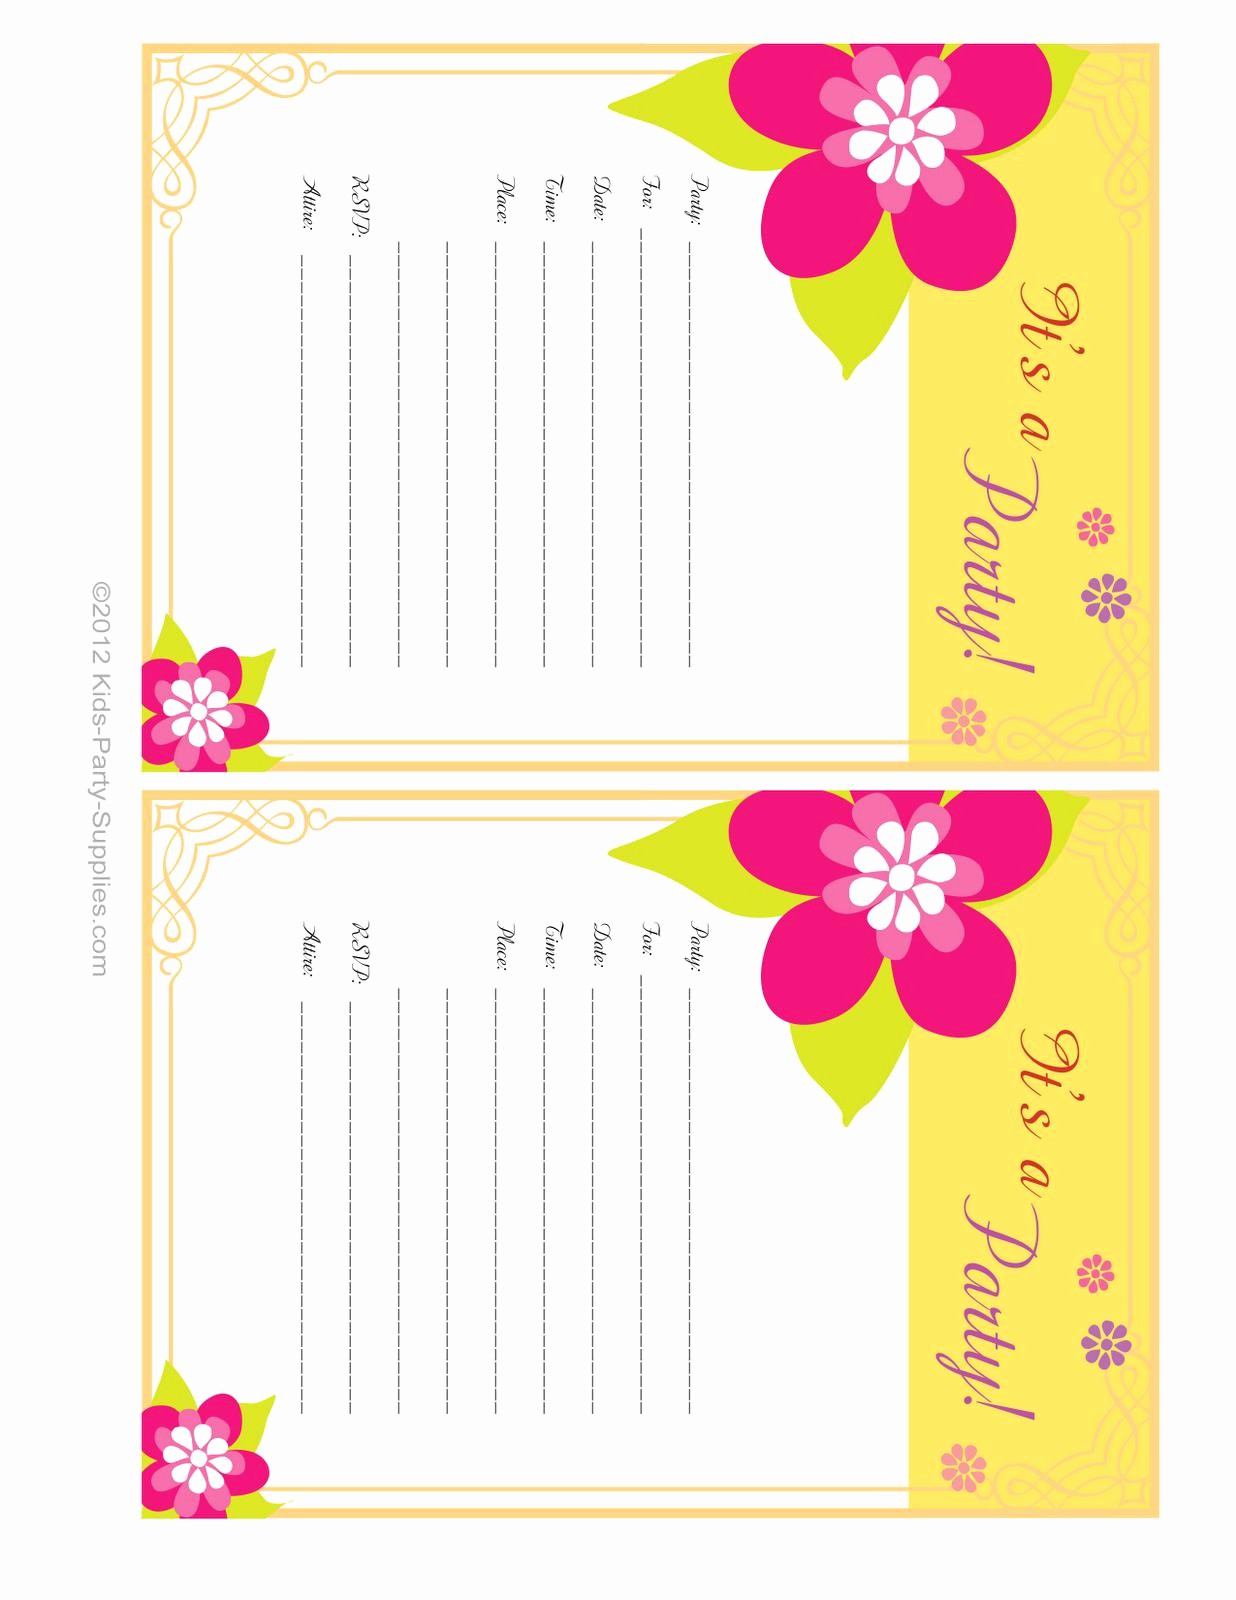 Free Printable Party Invitations Templates Lovely Free Printable Party Invitations Templates